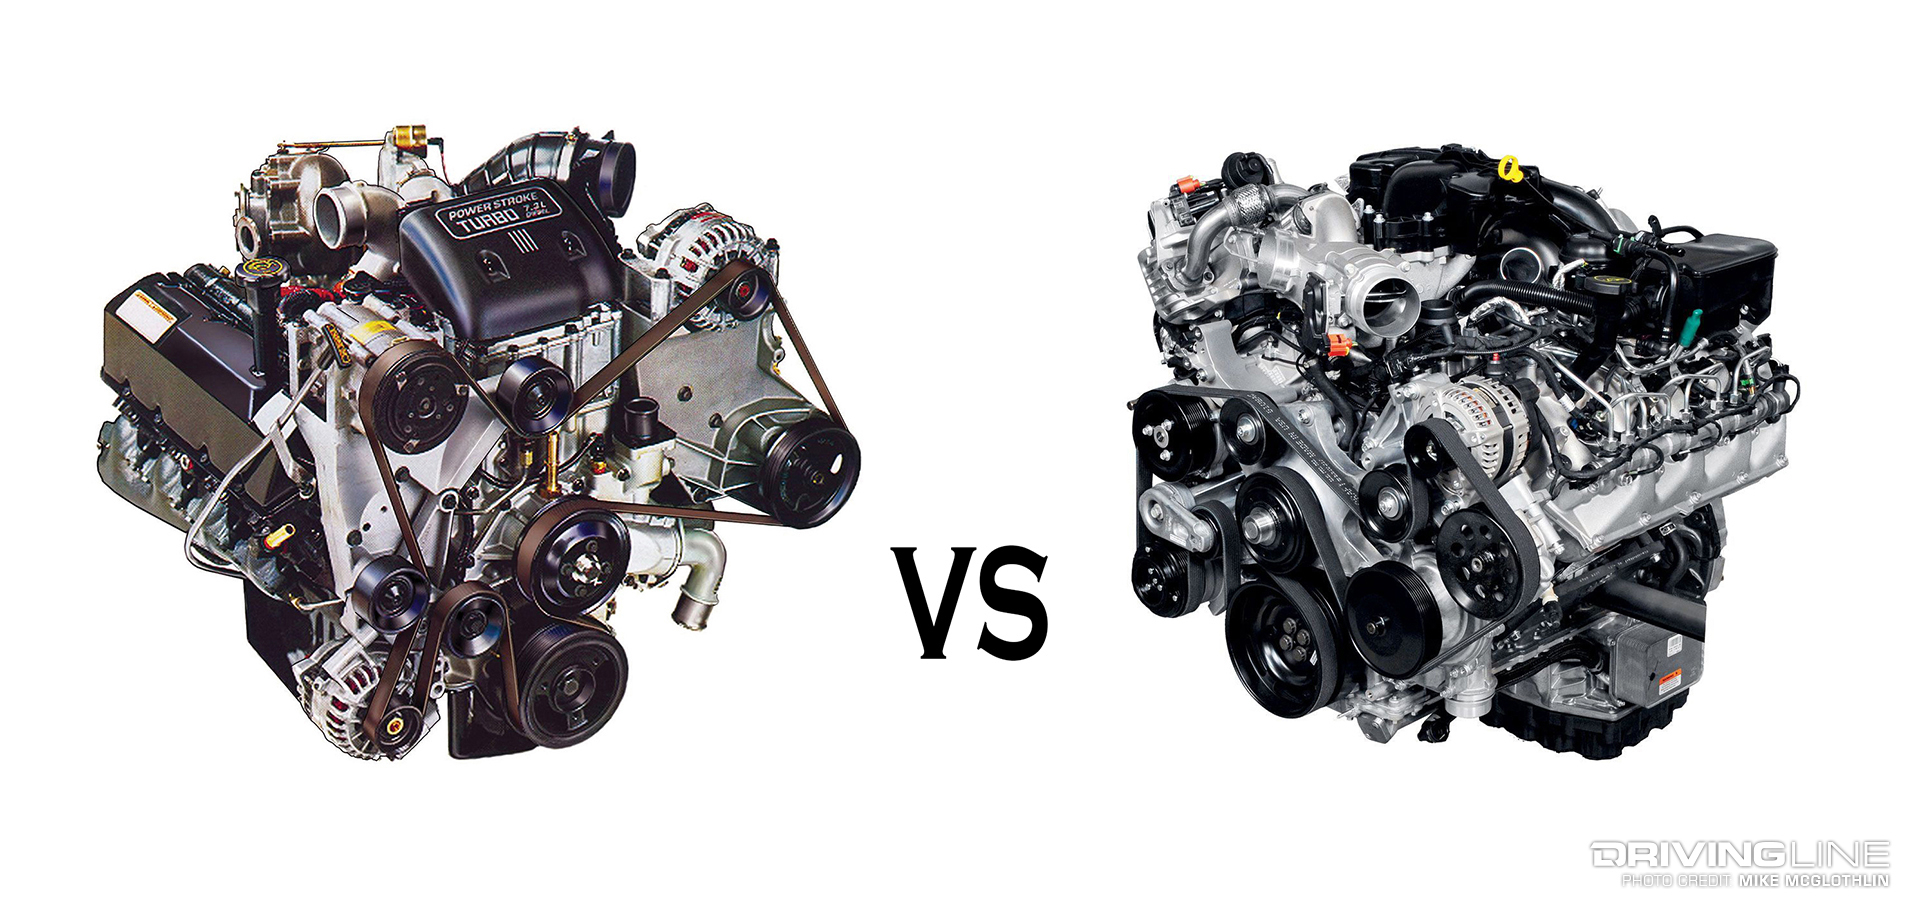 7.3L Vs. 6.7L: Which Power Stroke Is Really Better